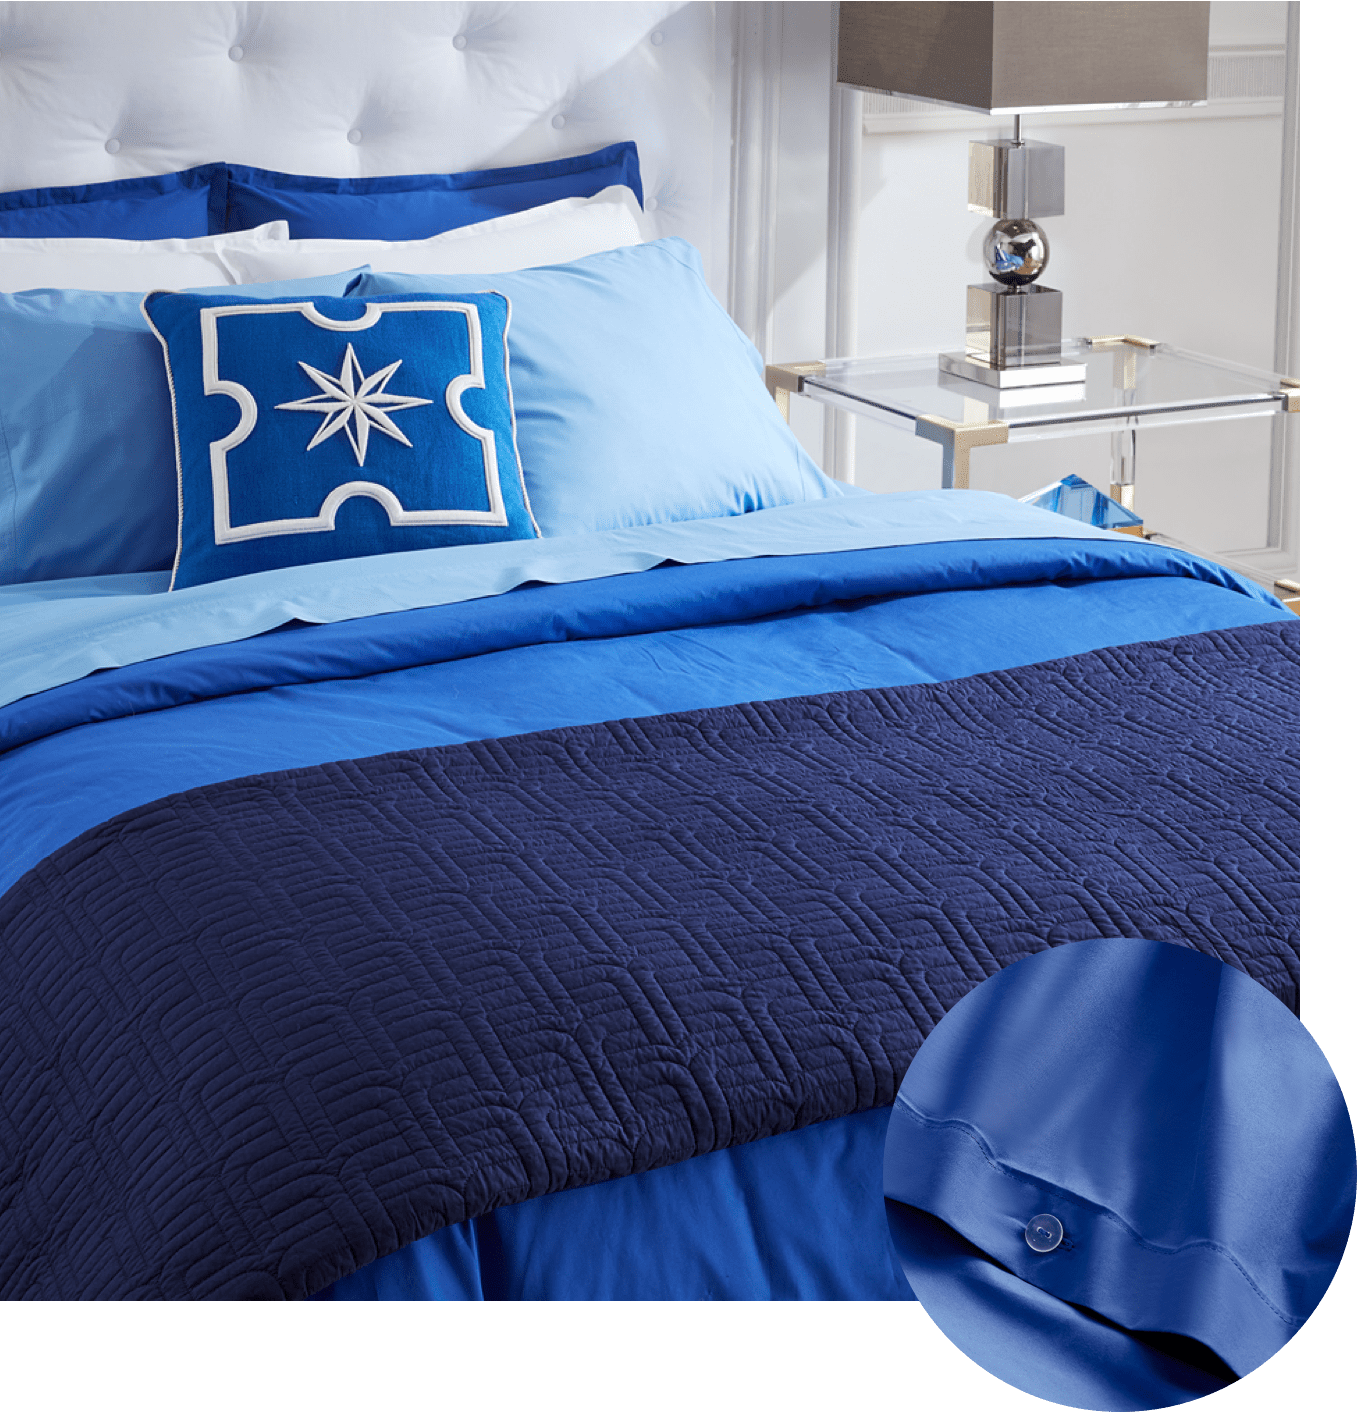 Paradise Percale sheets by Jonathan Adler